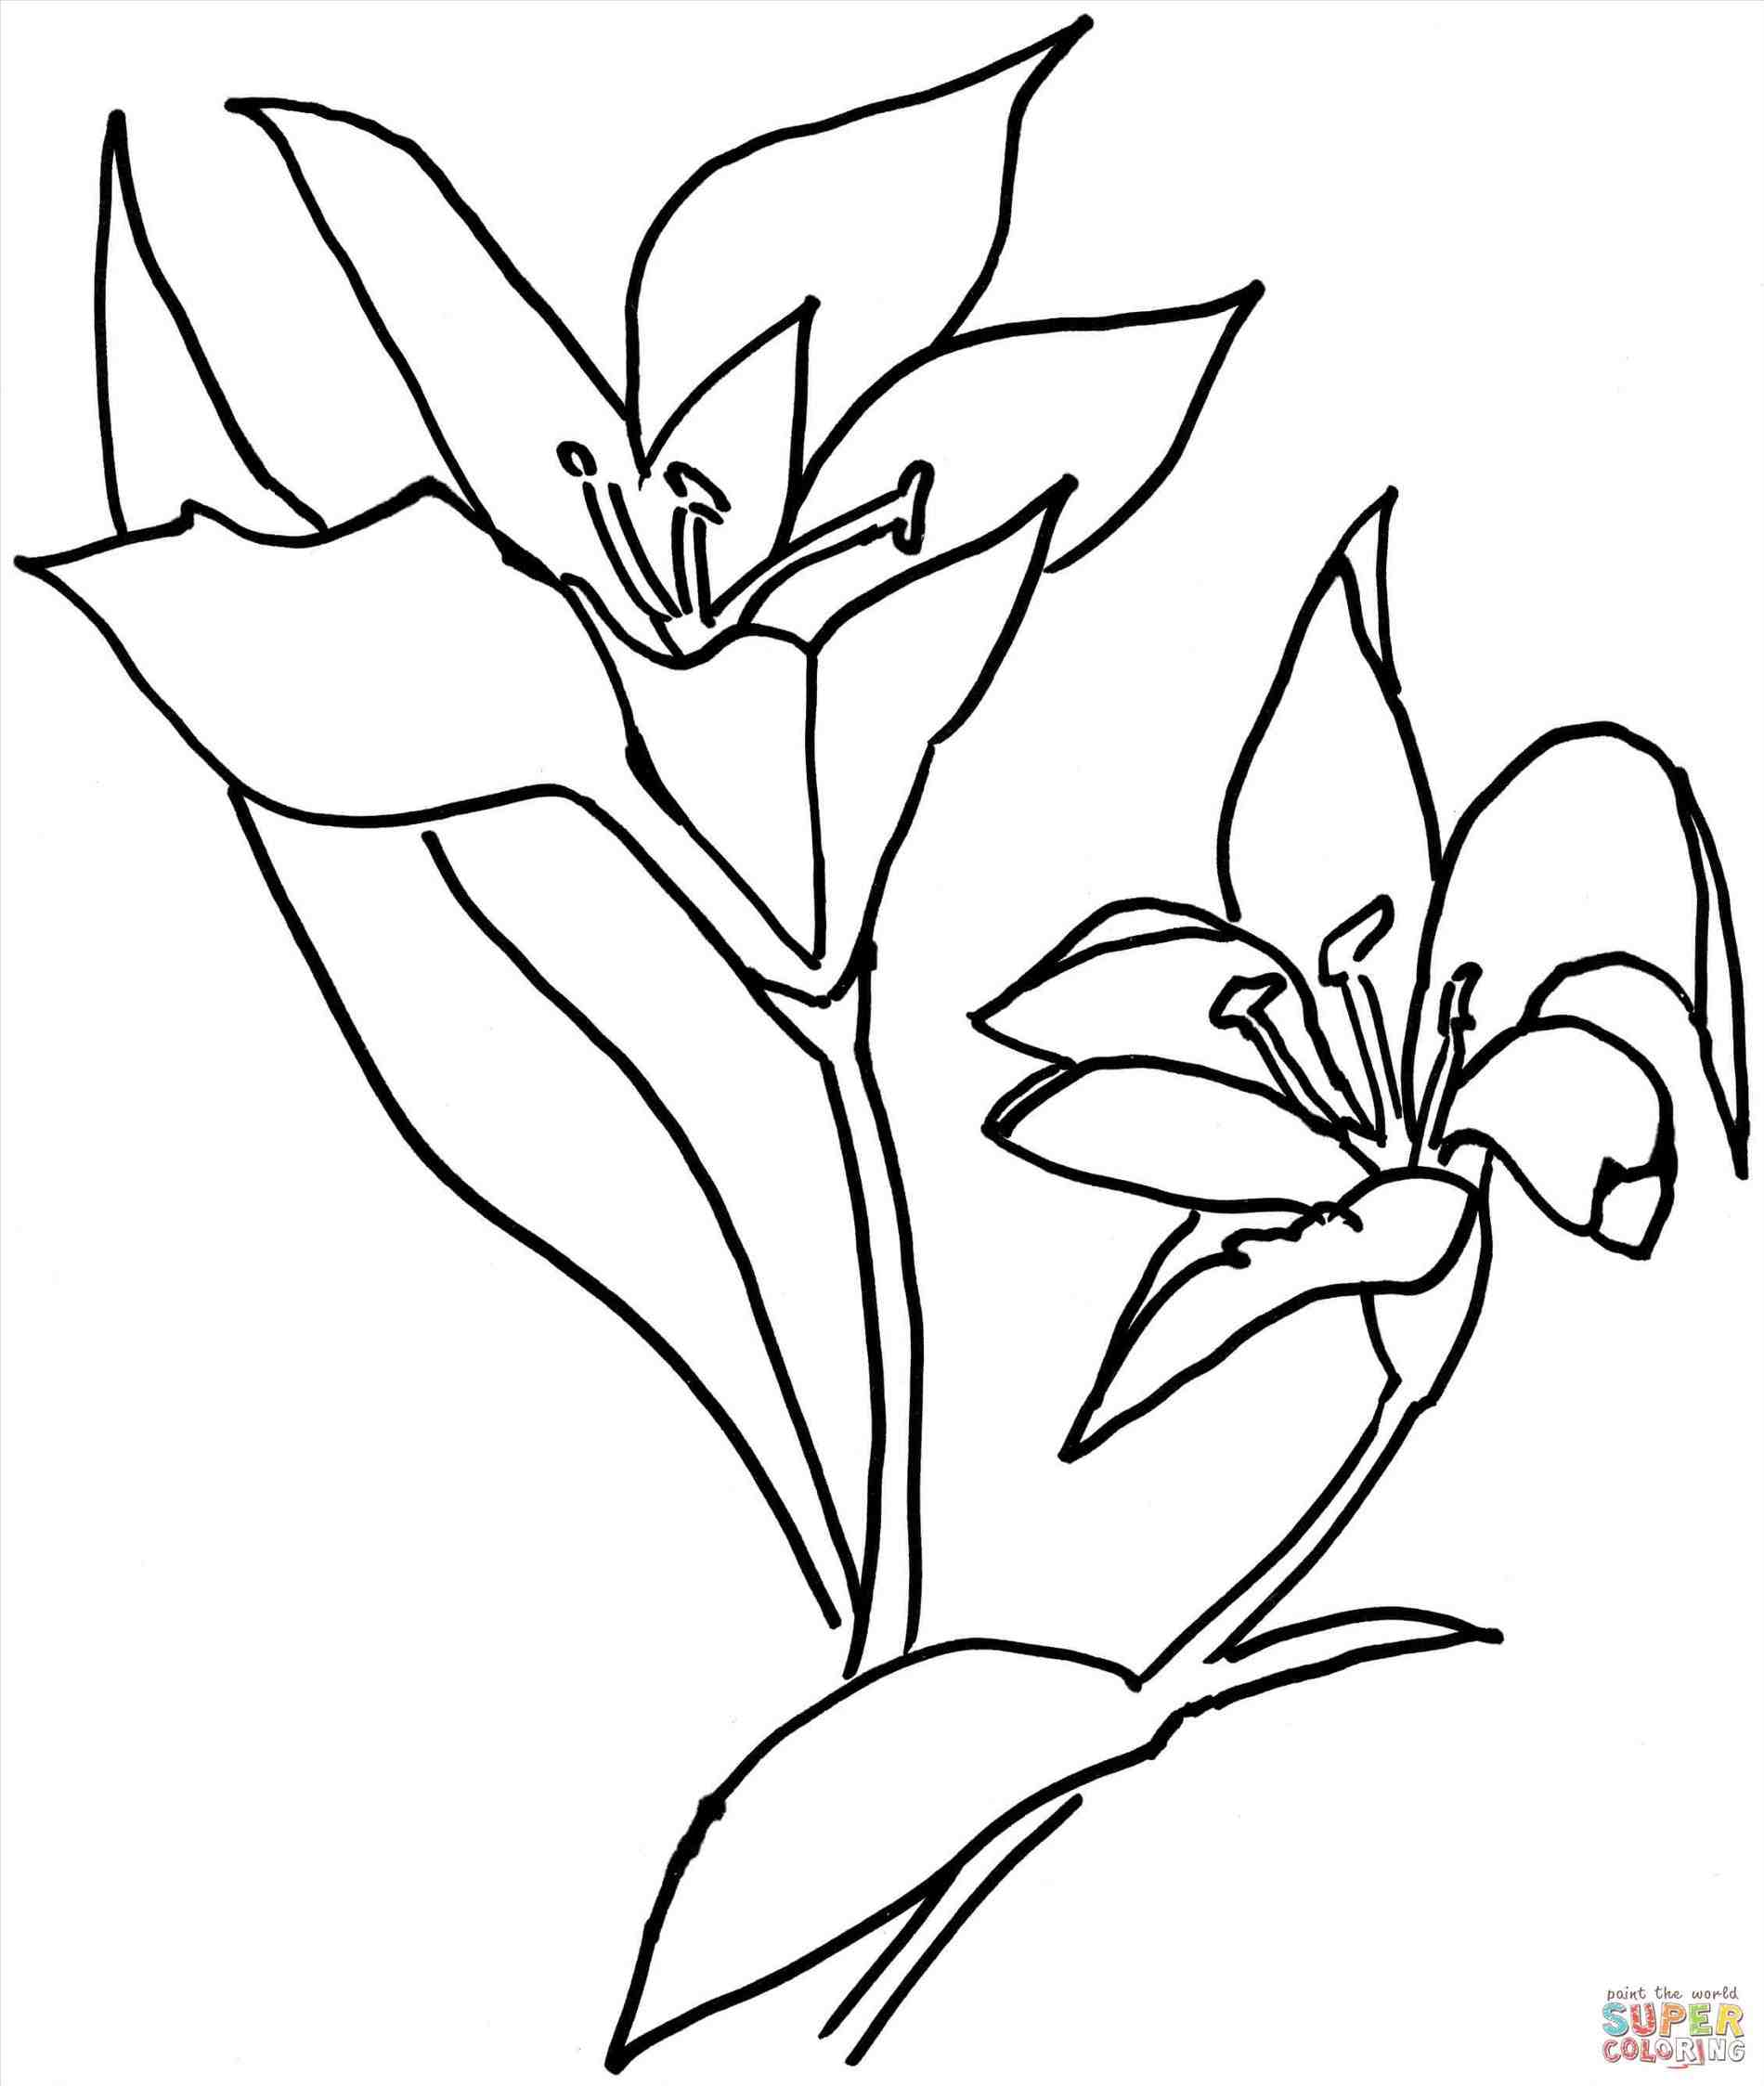 calla lily outline free vector graphic calla lily flower bloom plant outline lily calla